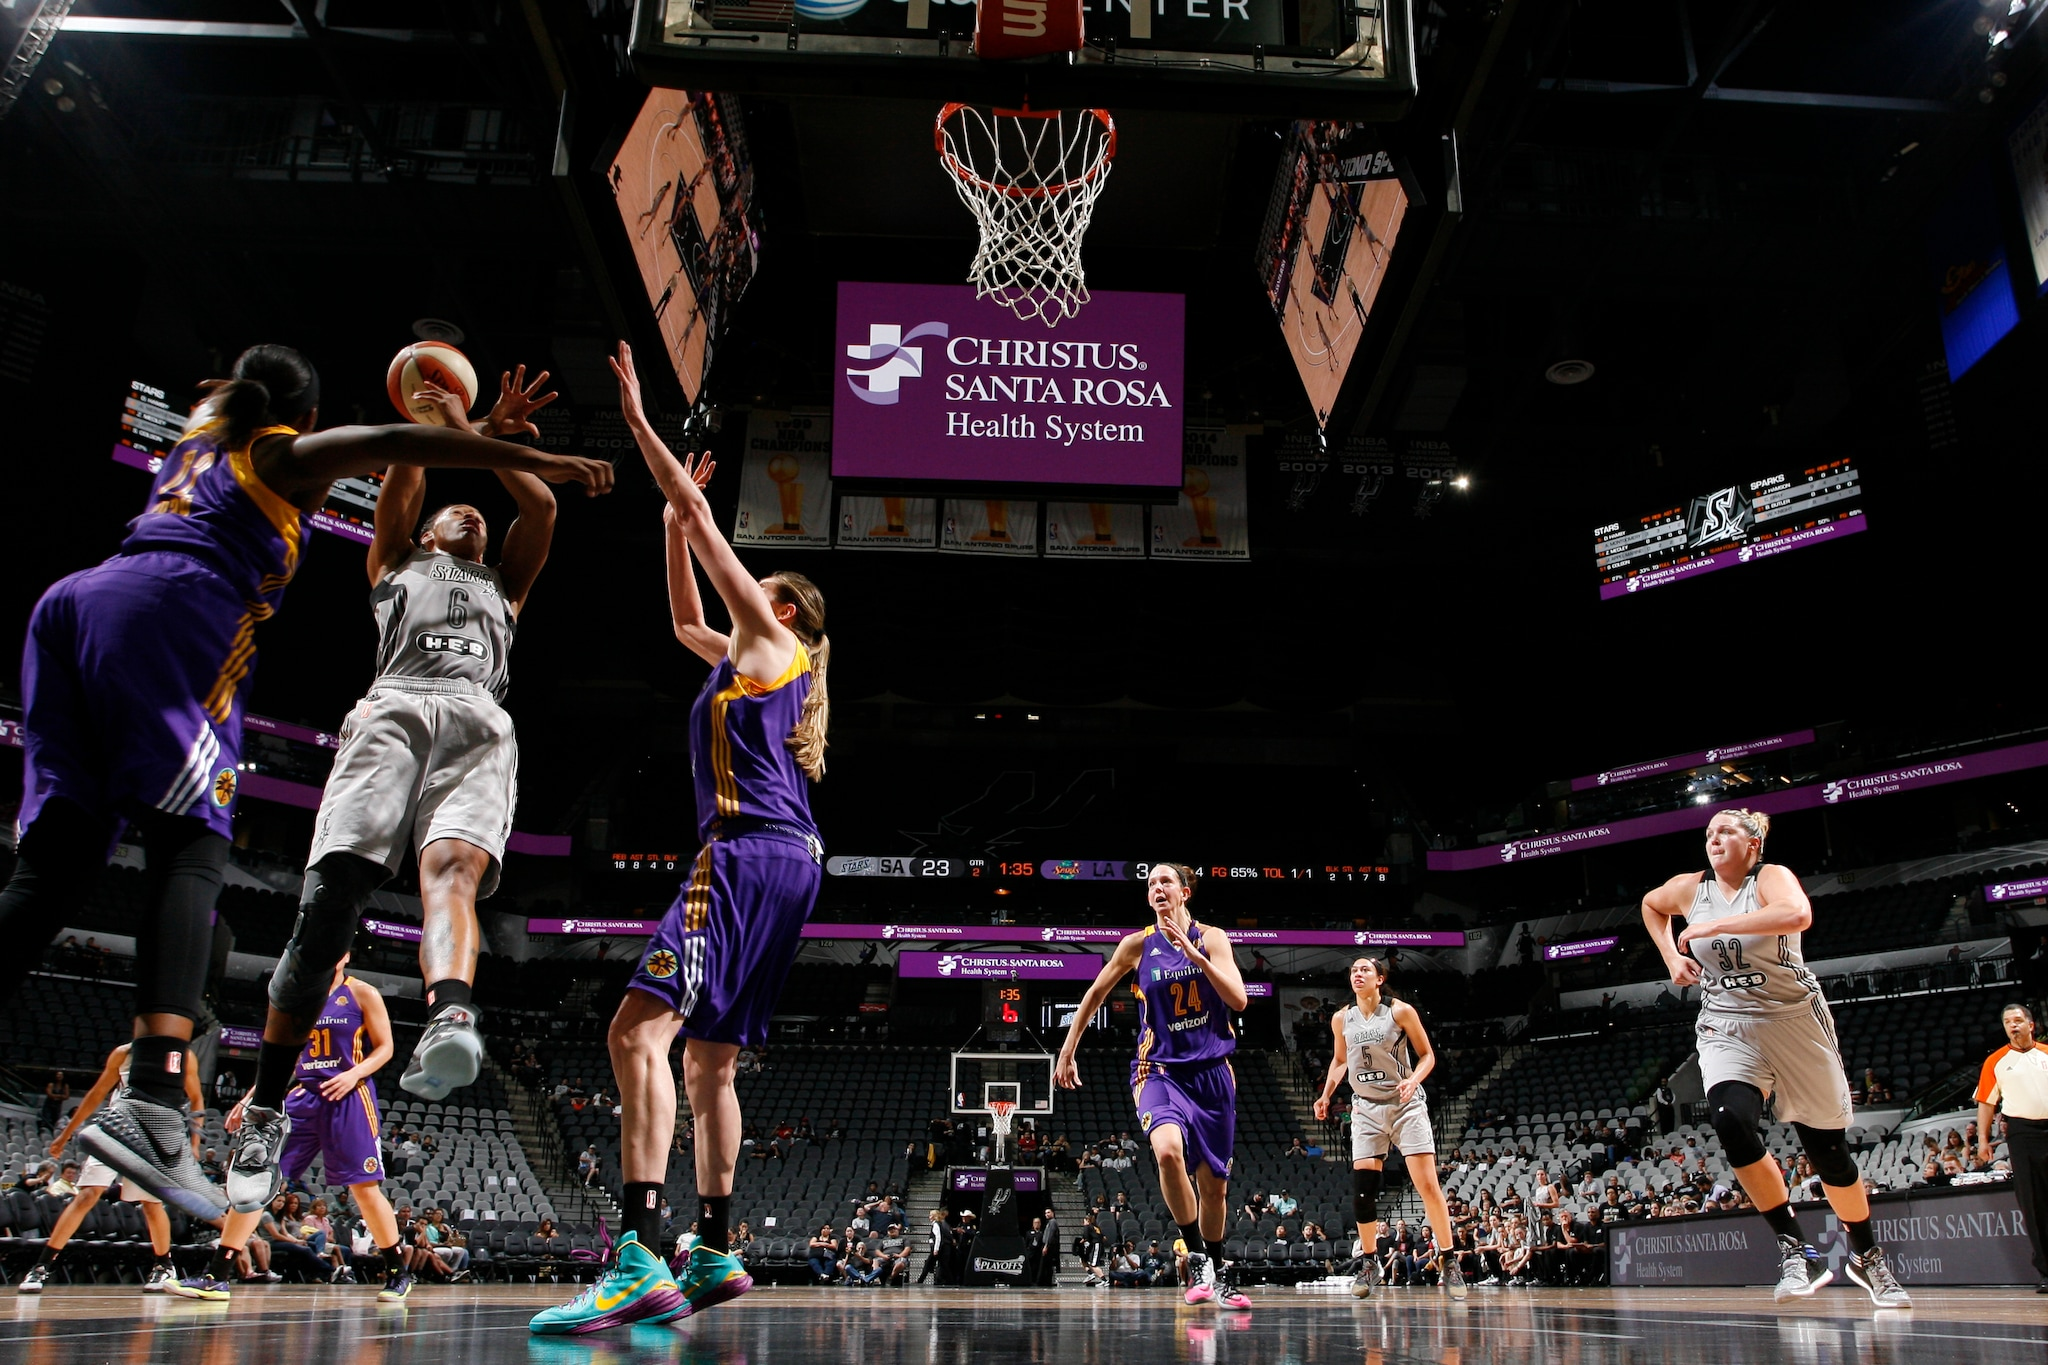 SAN ANTONIO, TX - MAY 9: Kayla Alexander #40 of the San Antonio Stars shoots the ball Los Angeles Sparks on May 9, 2016 at the AT&T Center in San Antonio, Texas. NOTE TO USER: User expressly acknowledges and agrees that, by downloading and or using this photograph, user is consenting to the terms and conditions of the Getty Images License Agreement. Mandatory Copyright Notice: Copyright 2016 NBAE (Photos by Chris Covatta/NBAE via Getty Images)